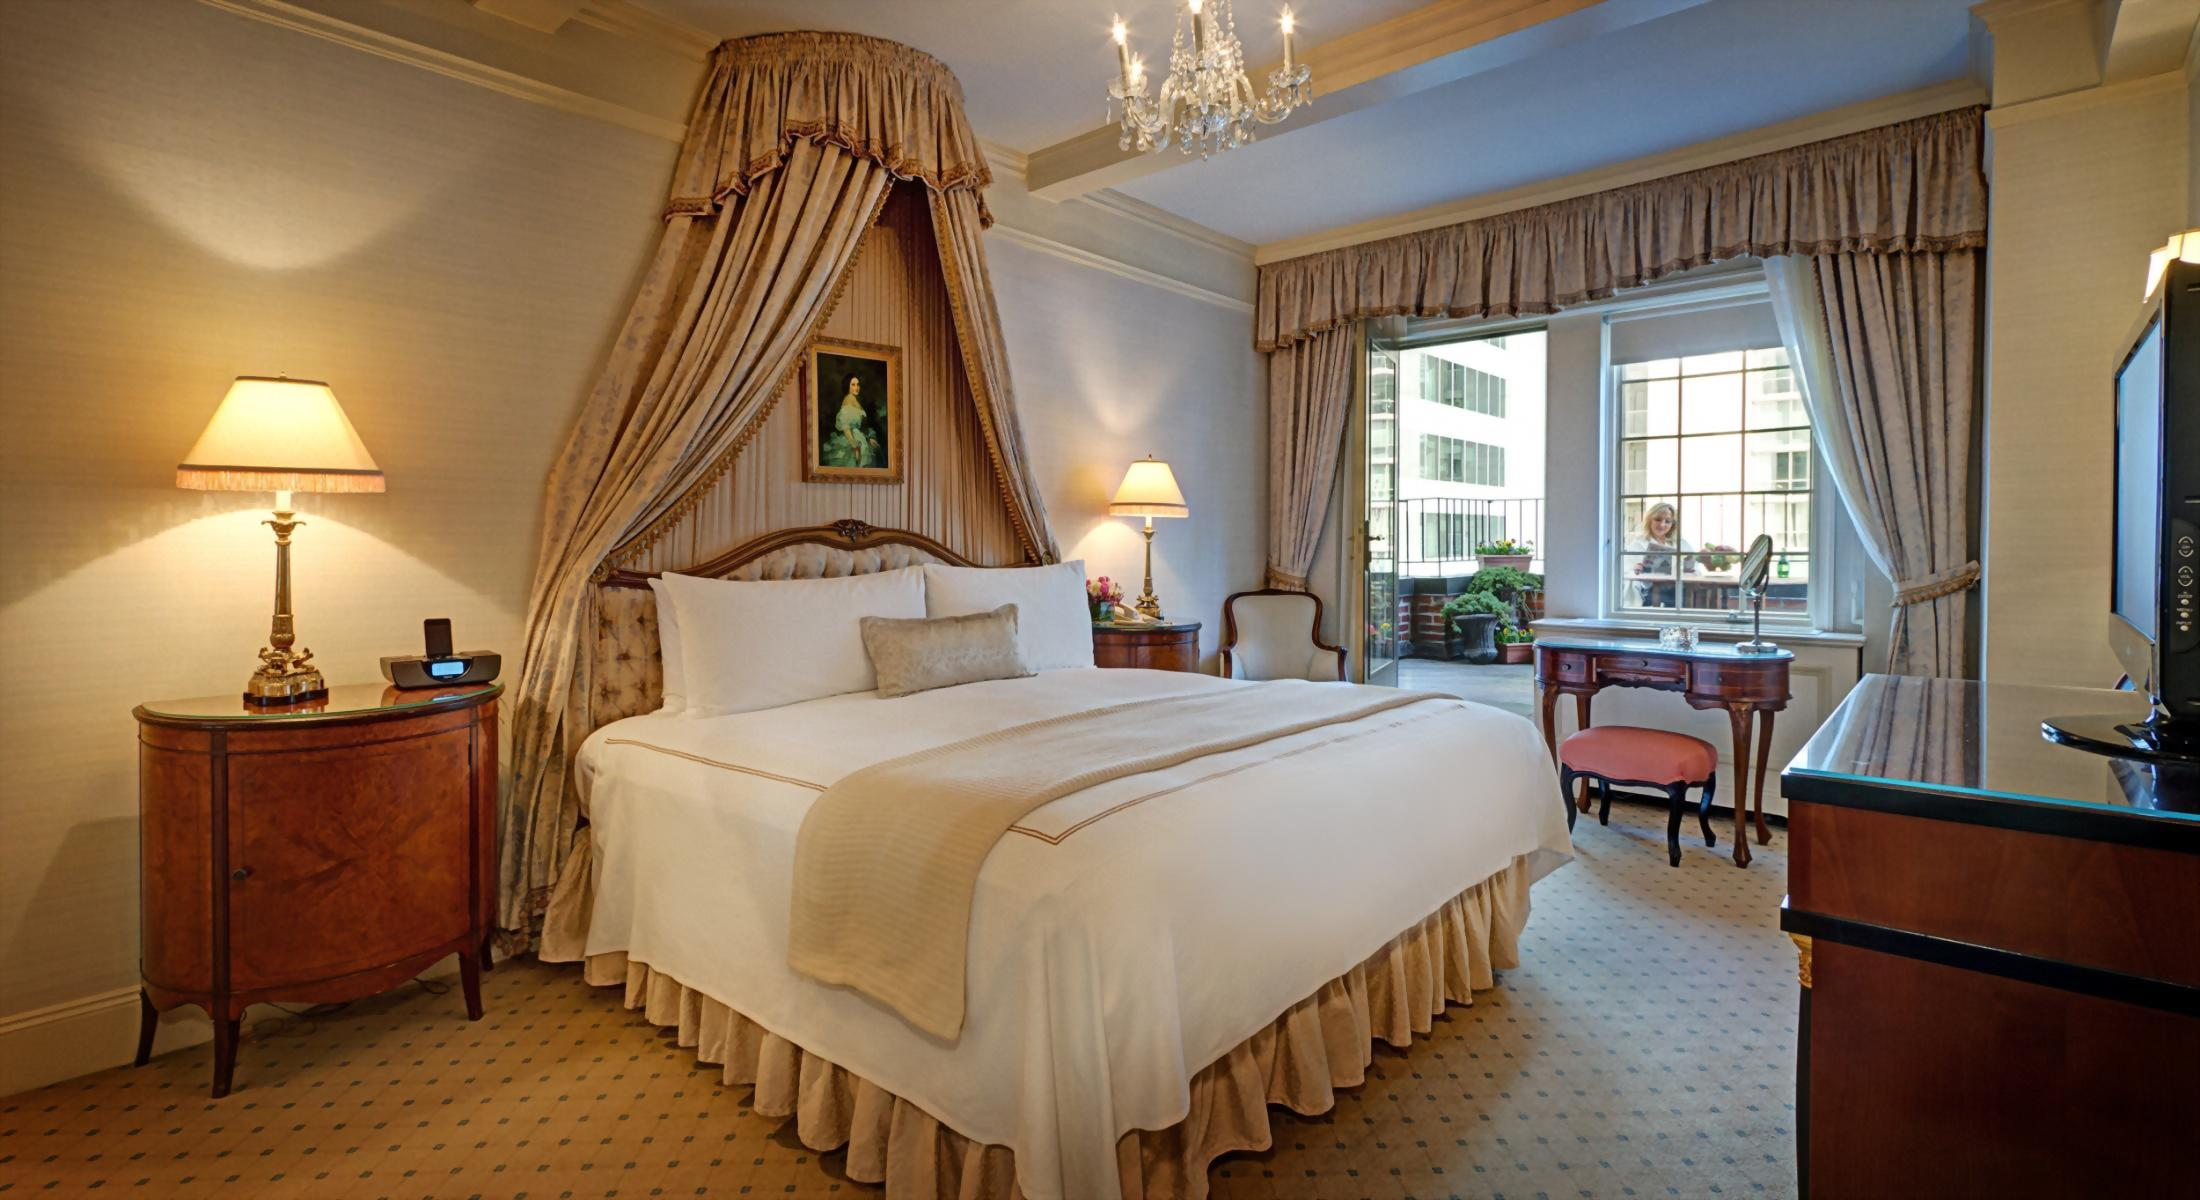 Bedroom of the Presidential Suite honoring Vladimir Horowitz at the Hotel Elysee.  This room has a beautiful balcony off the bedroom.